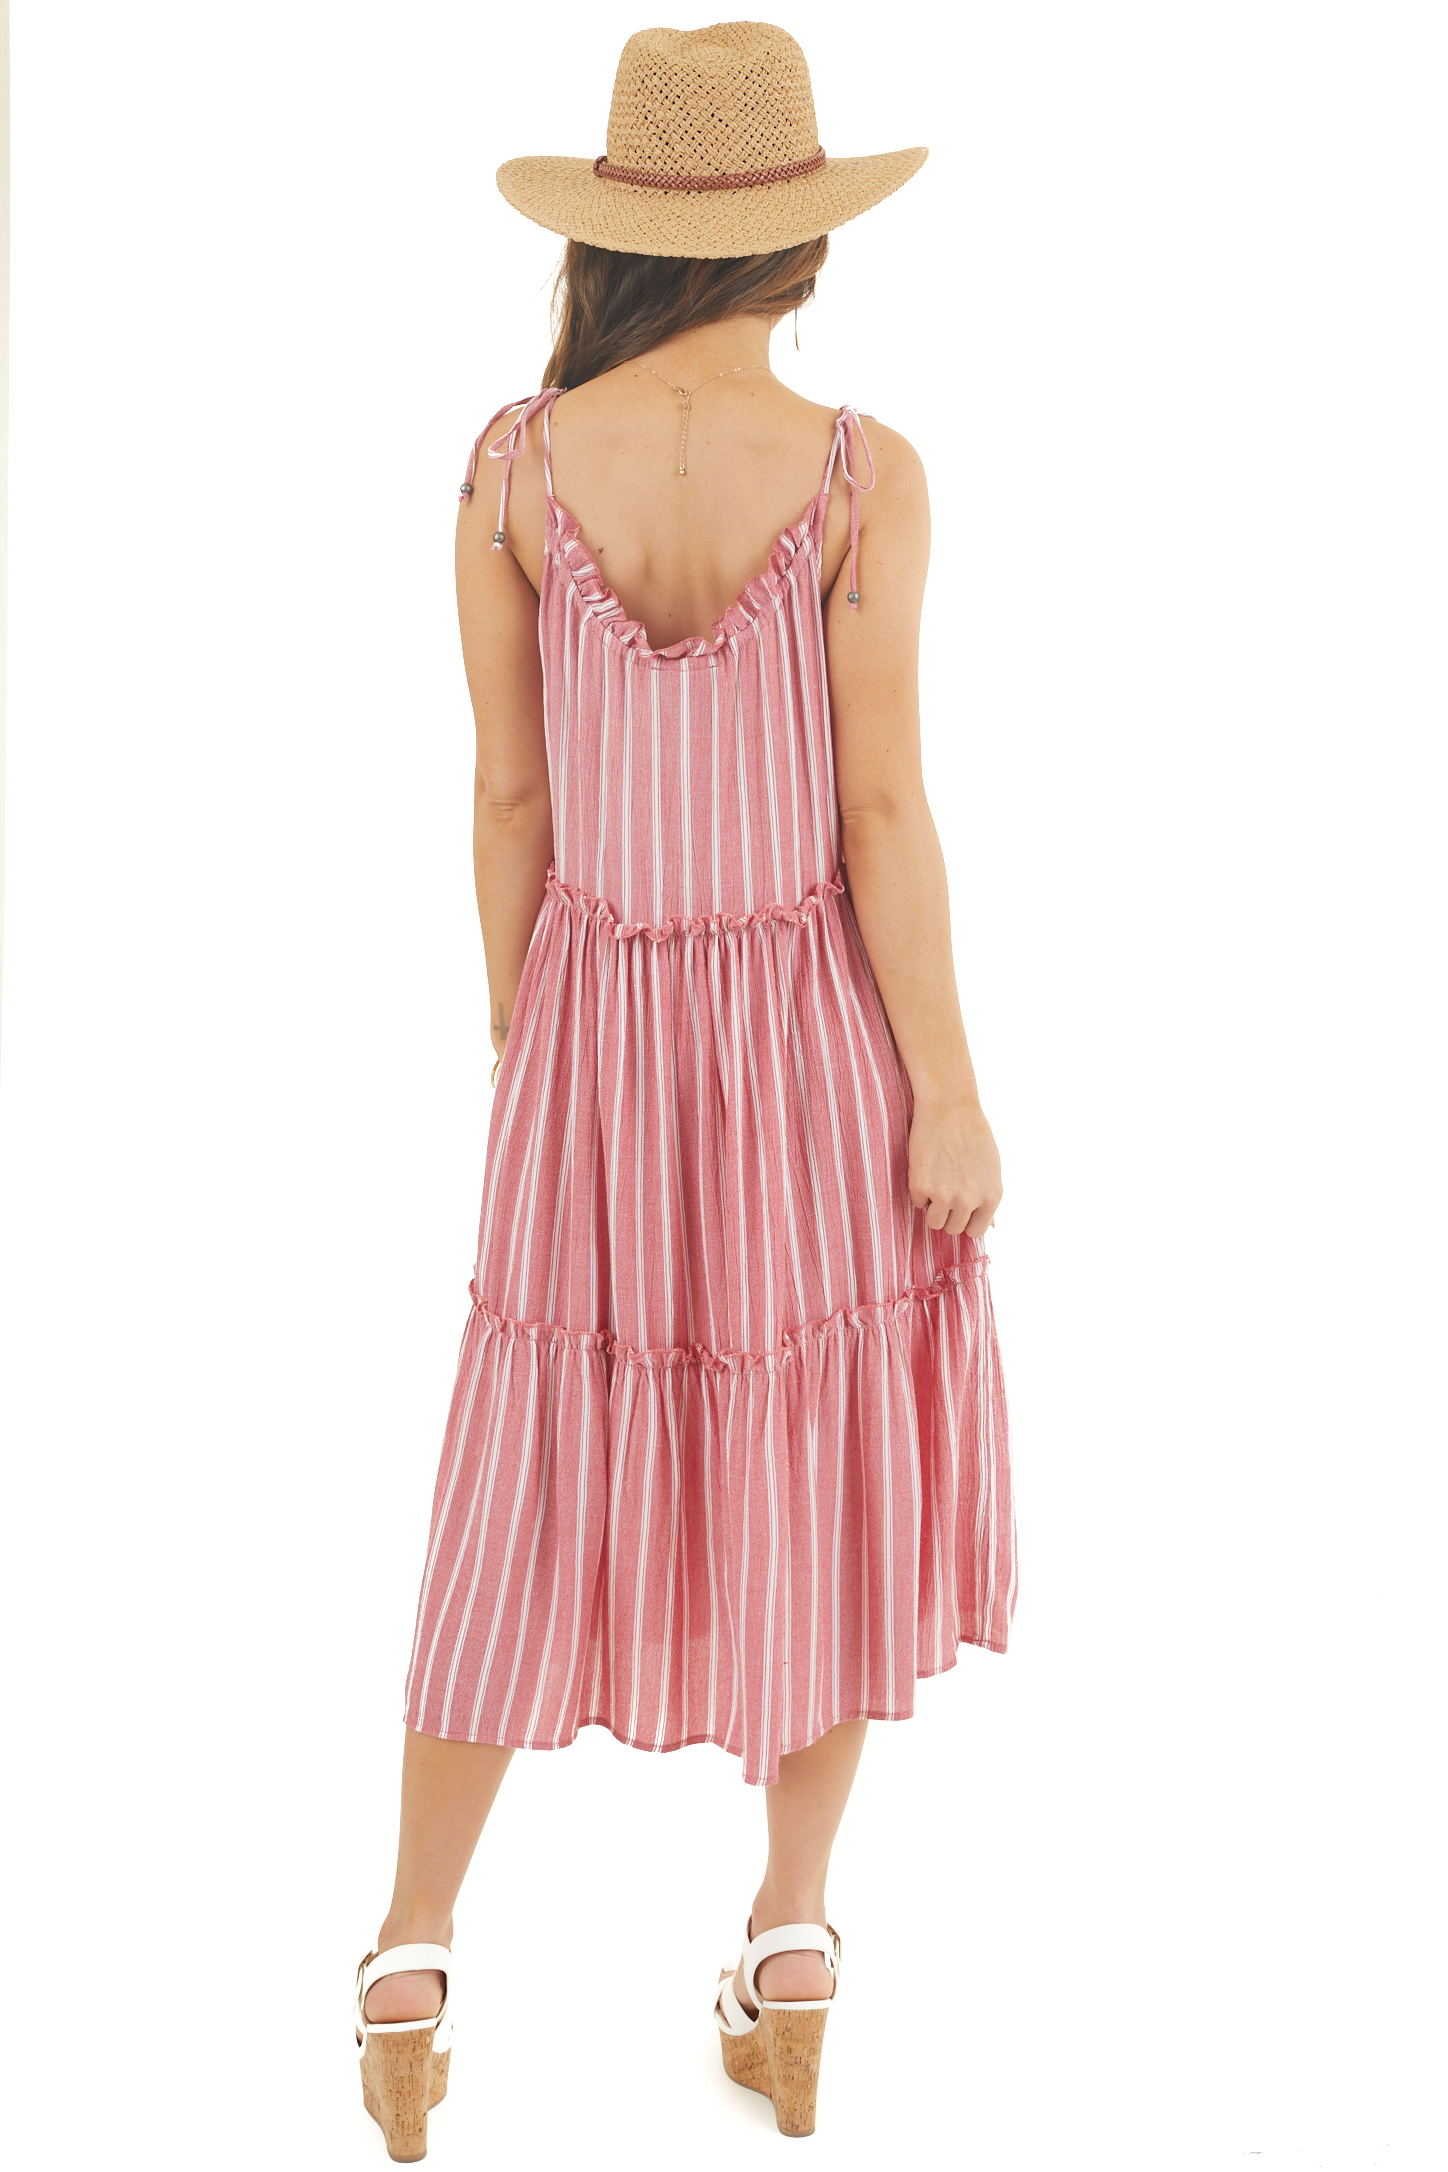 Faded Red and Ivory Striped Midi Dress with Tied Details